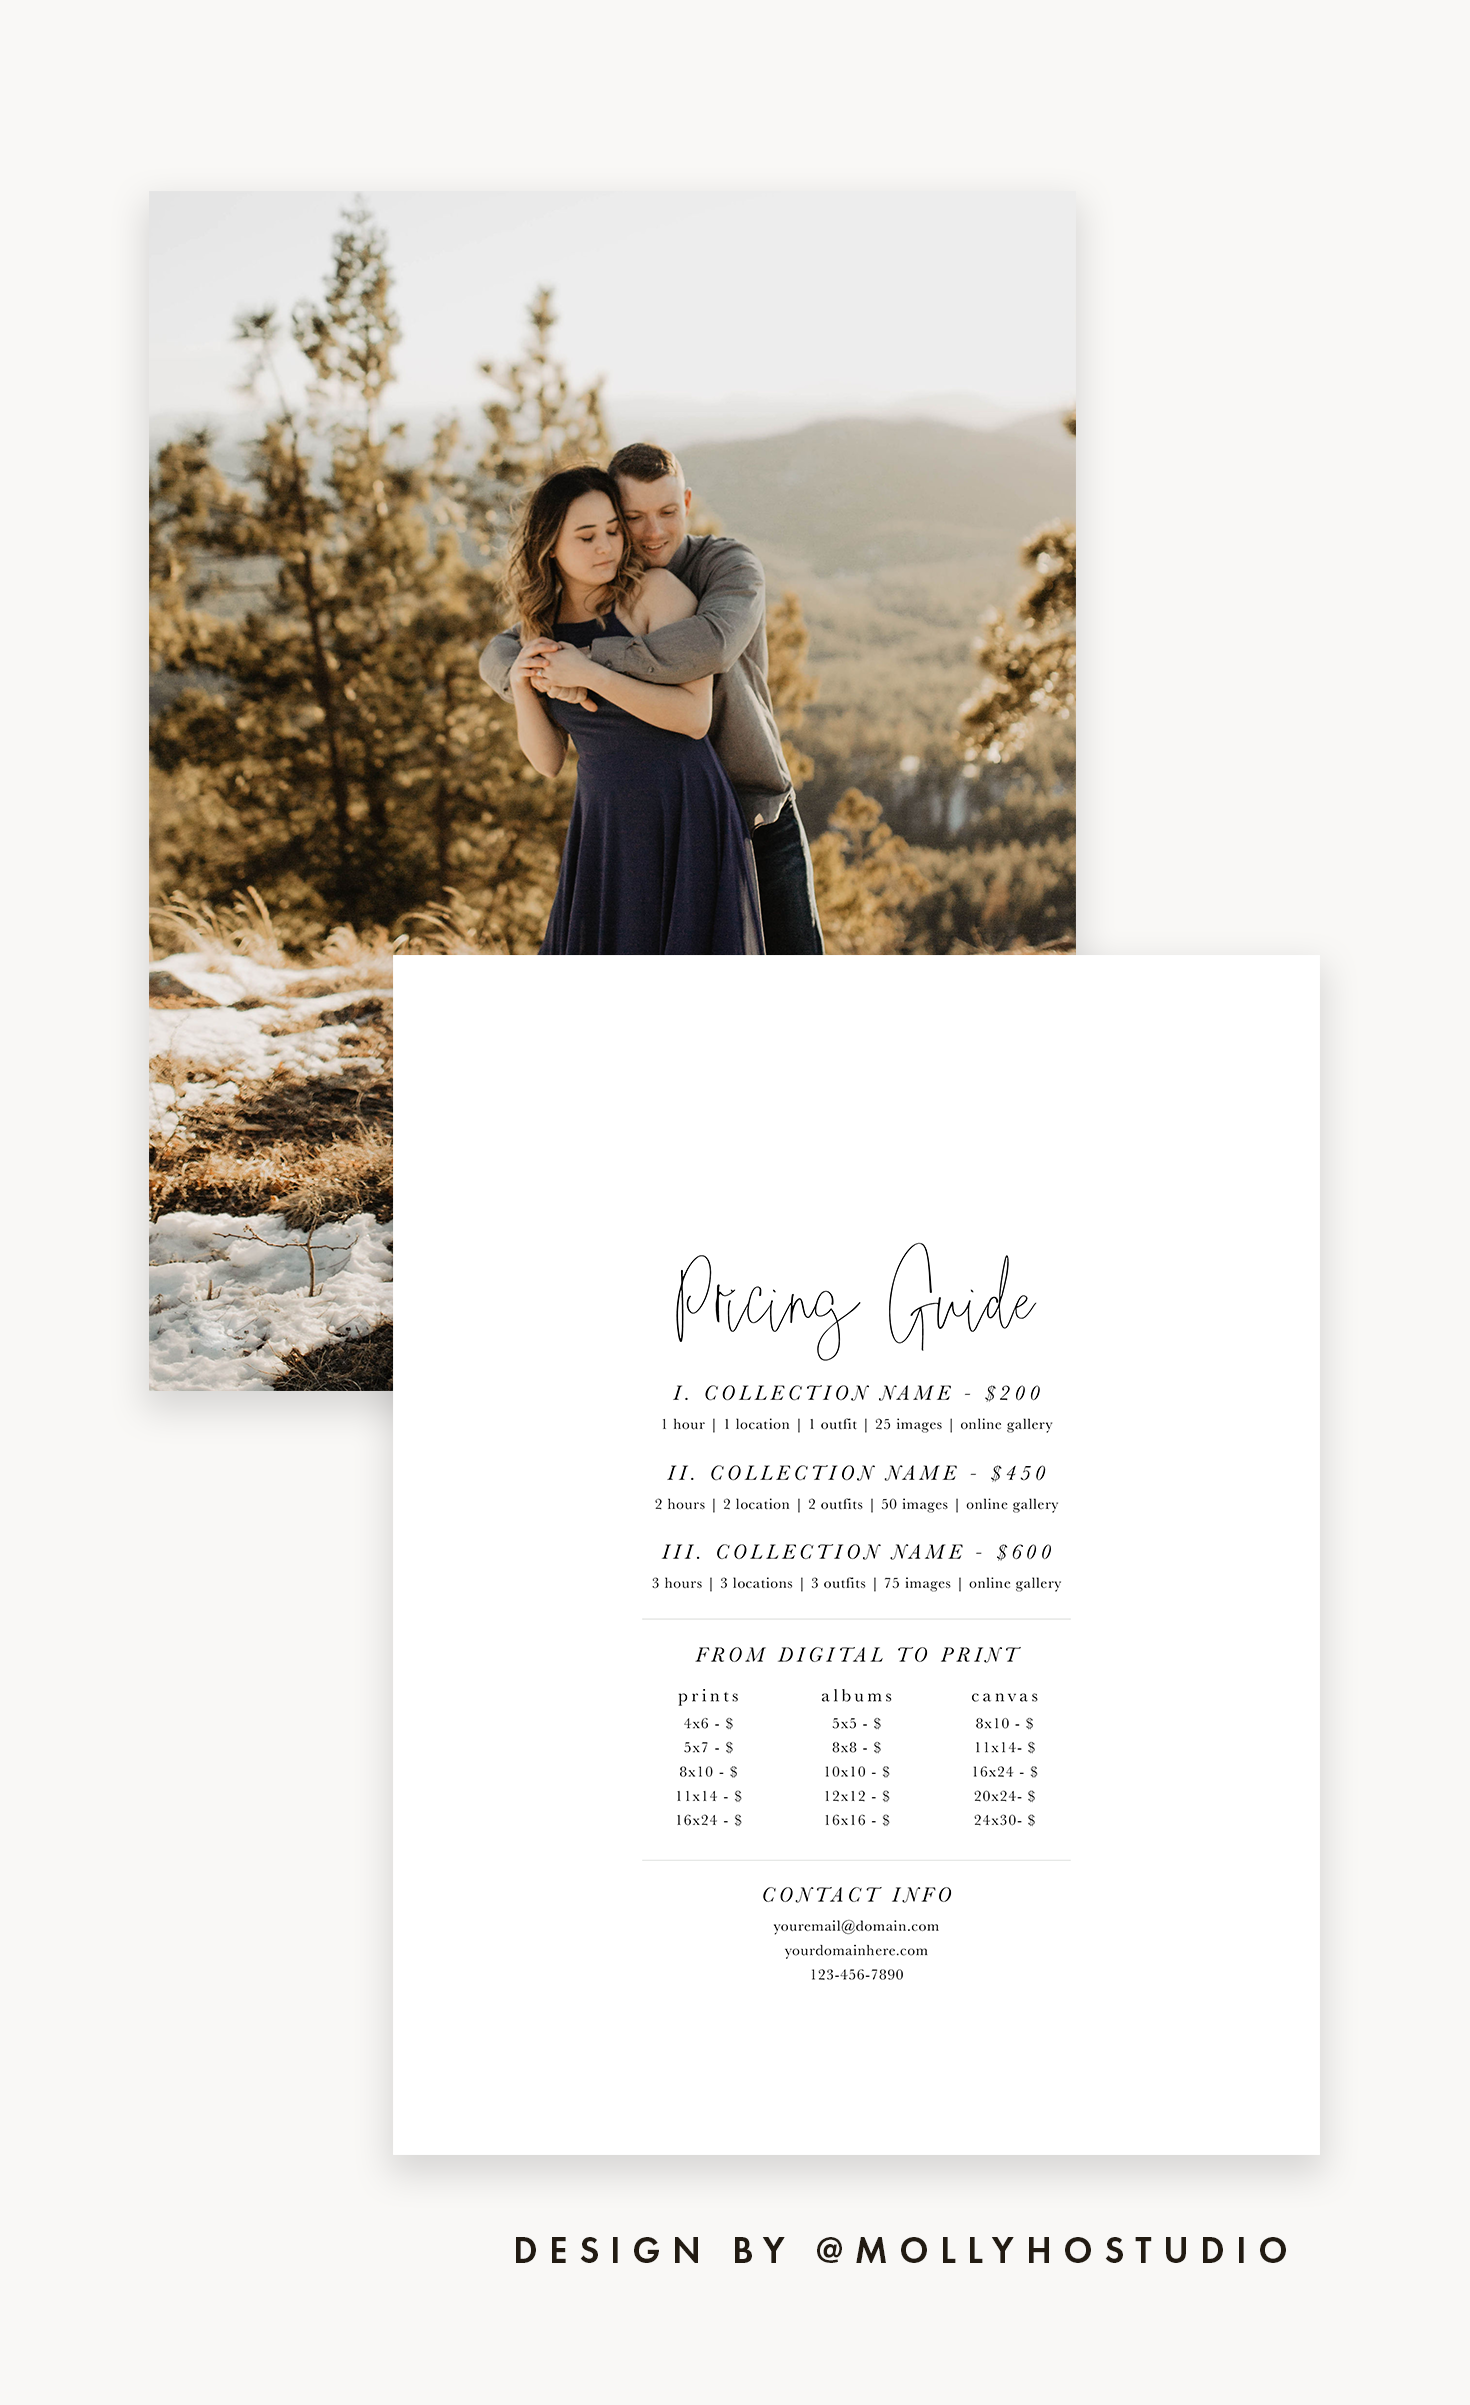 Photography Price List Template Photography Pricing Guide Etsy Pricing Guide Photography Photography Price List Photography Price List Template